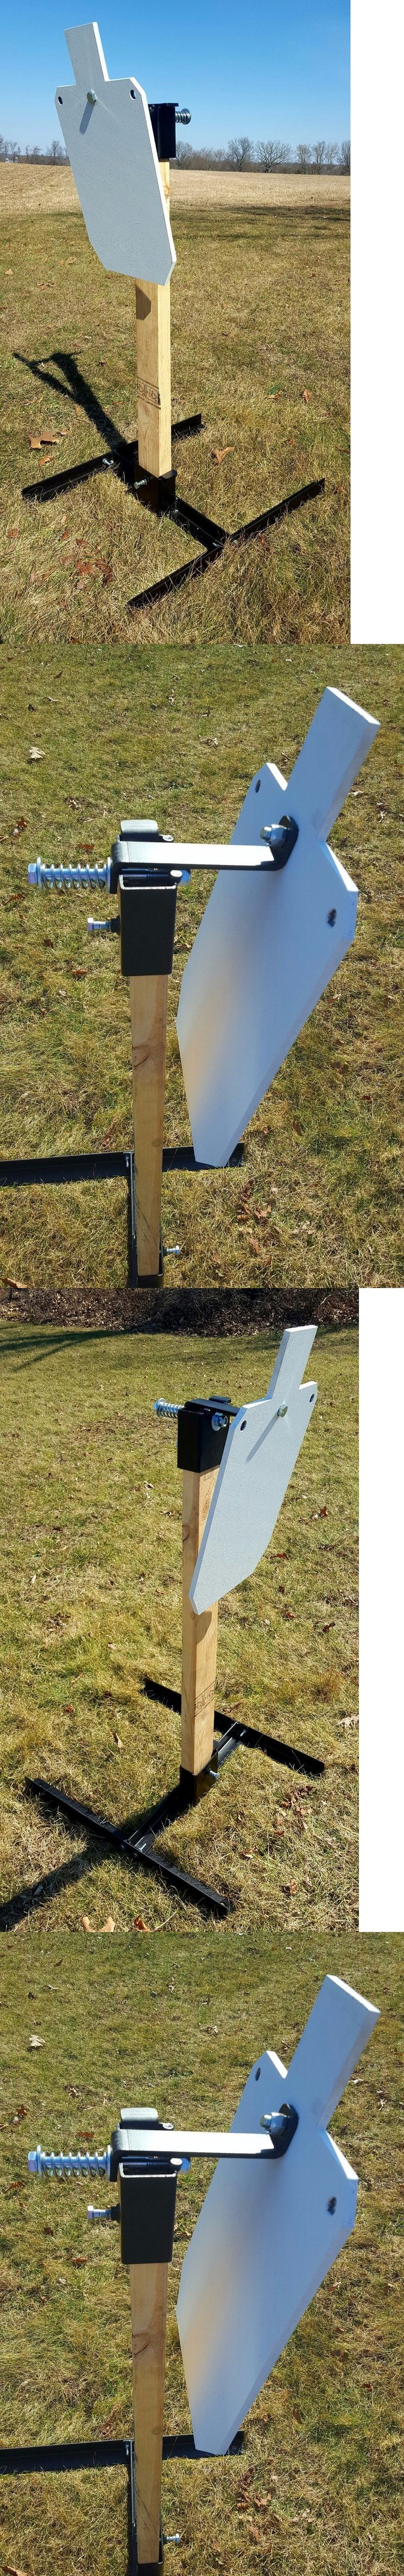 how to build steel popper targets